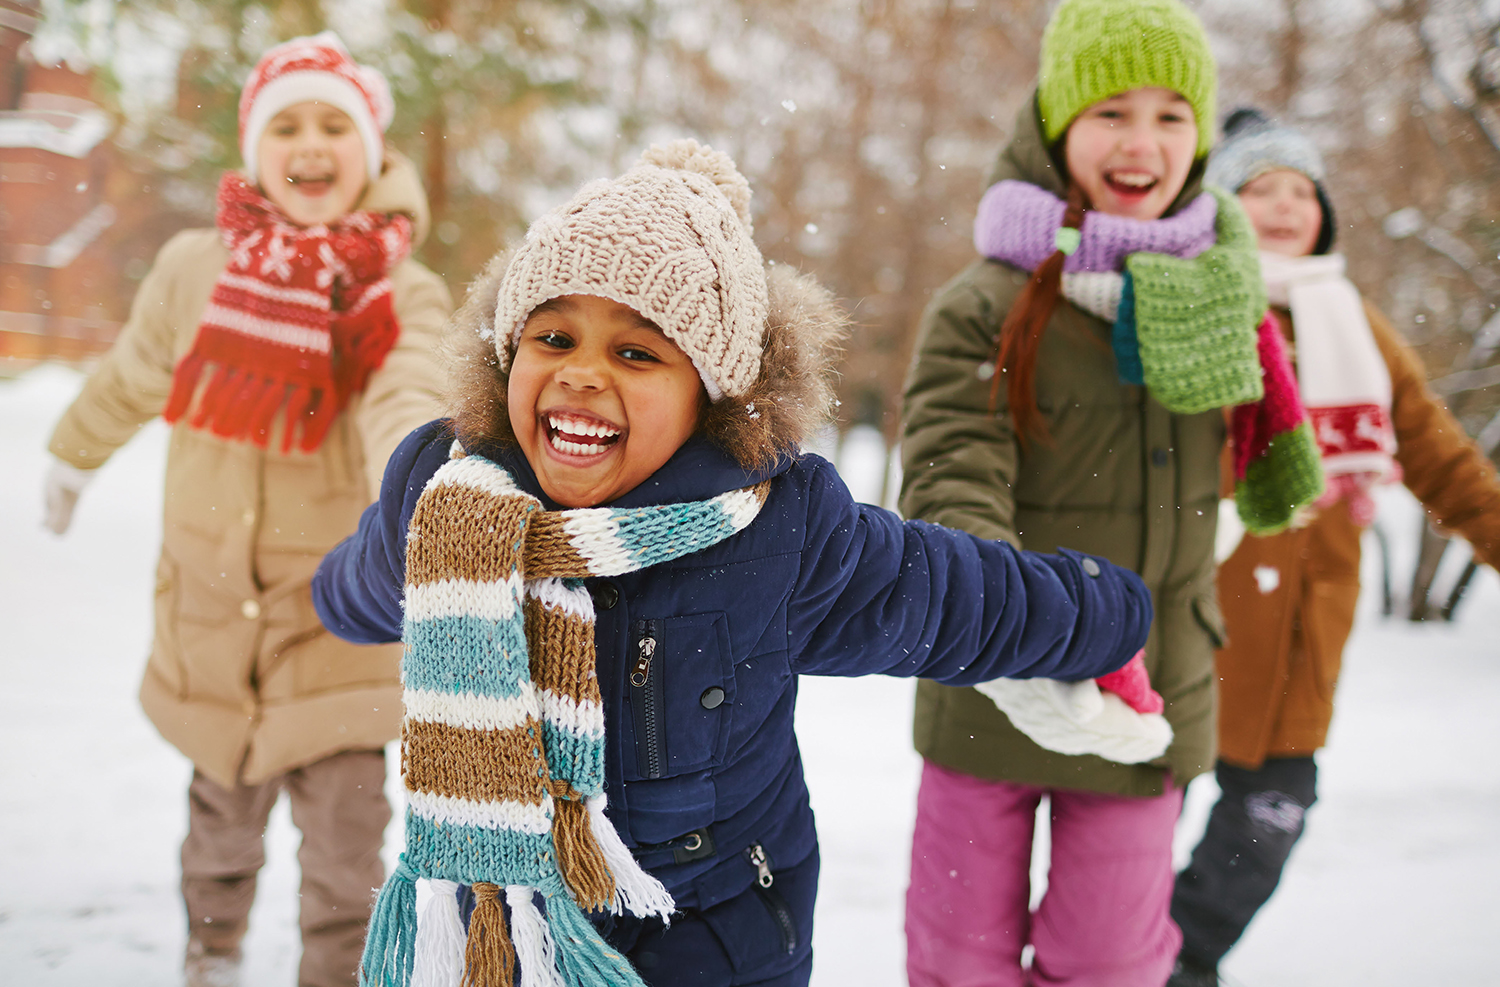 new photo kids playing in snow.jpg